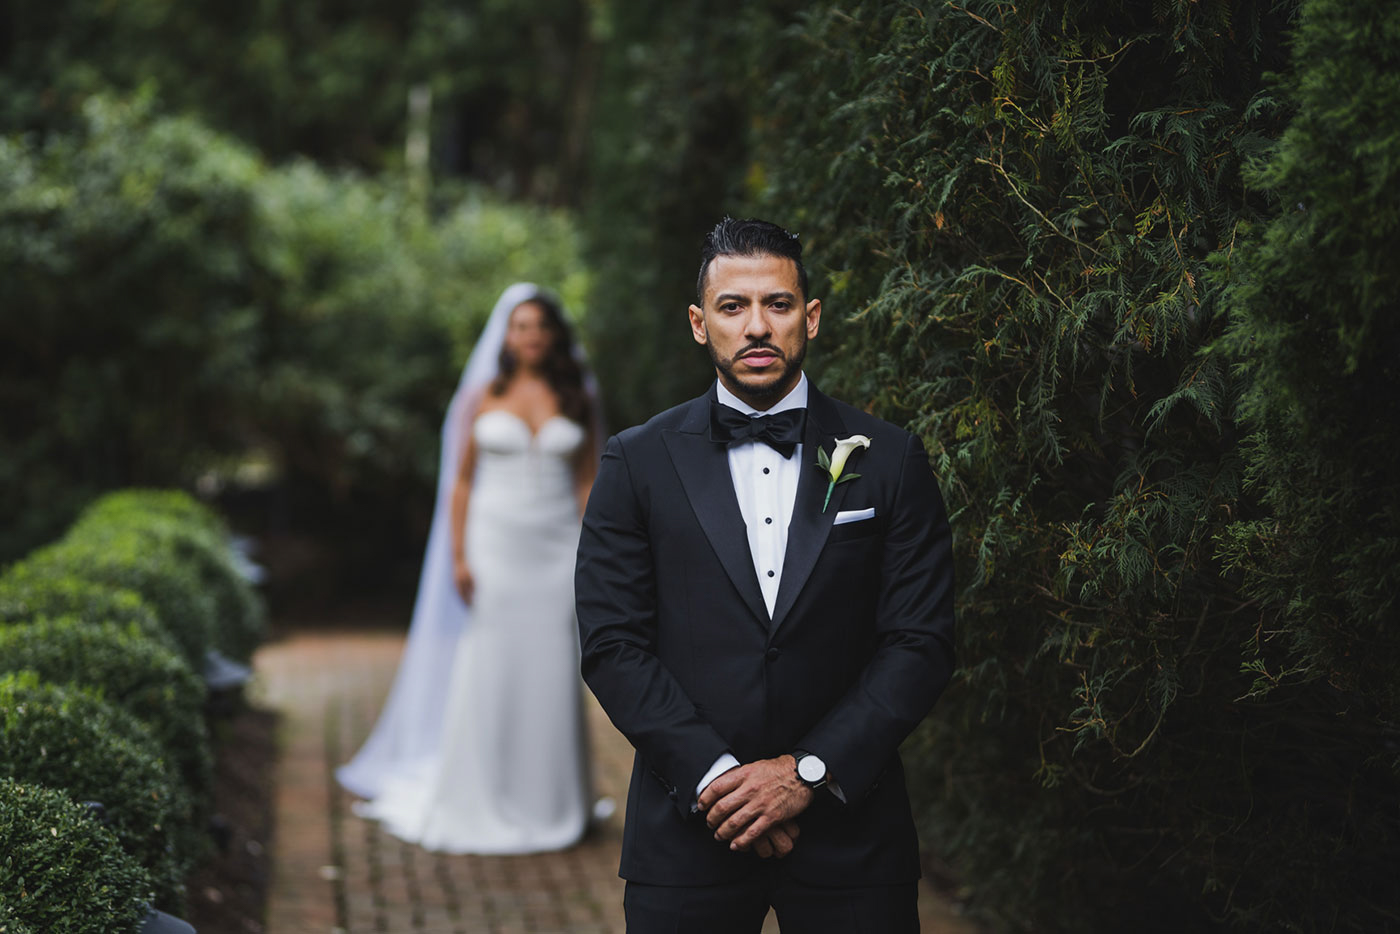 first look at the Estate at Florentine Gardens by Weddings by Hanel